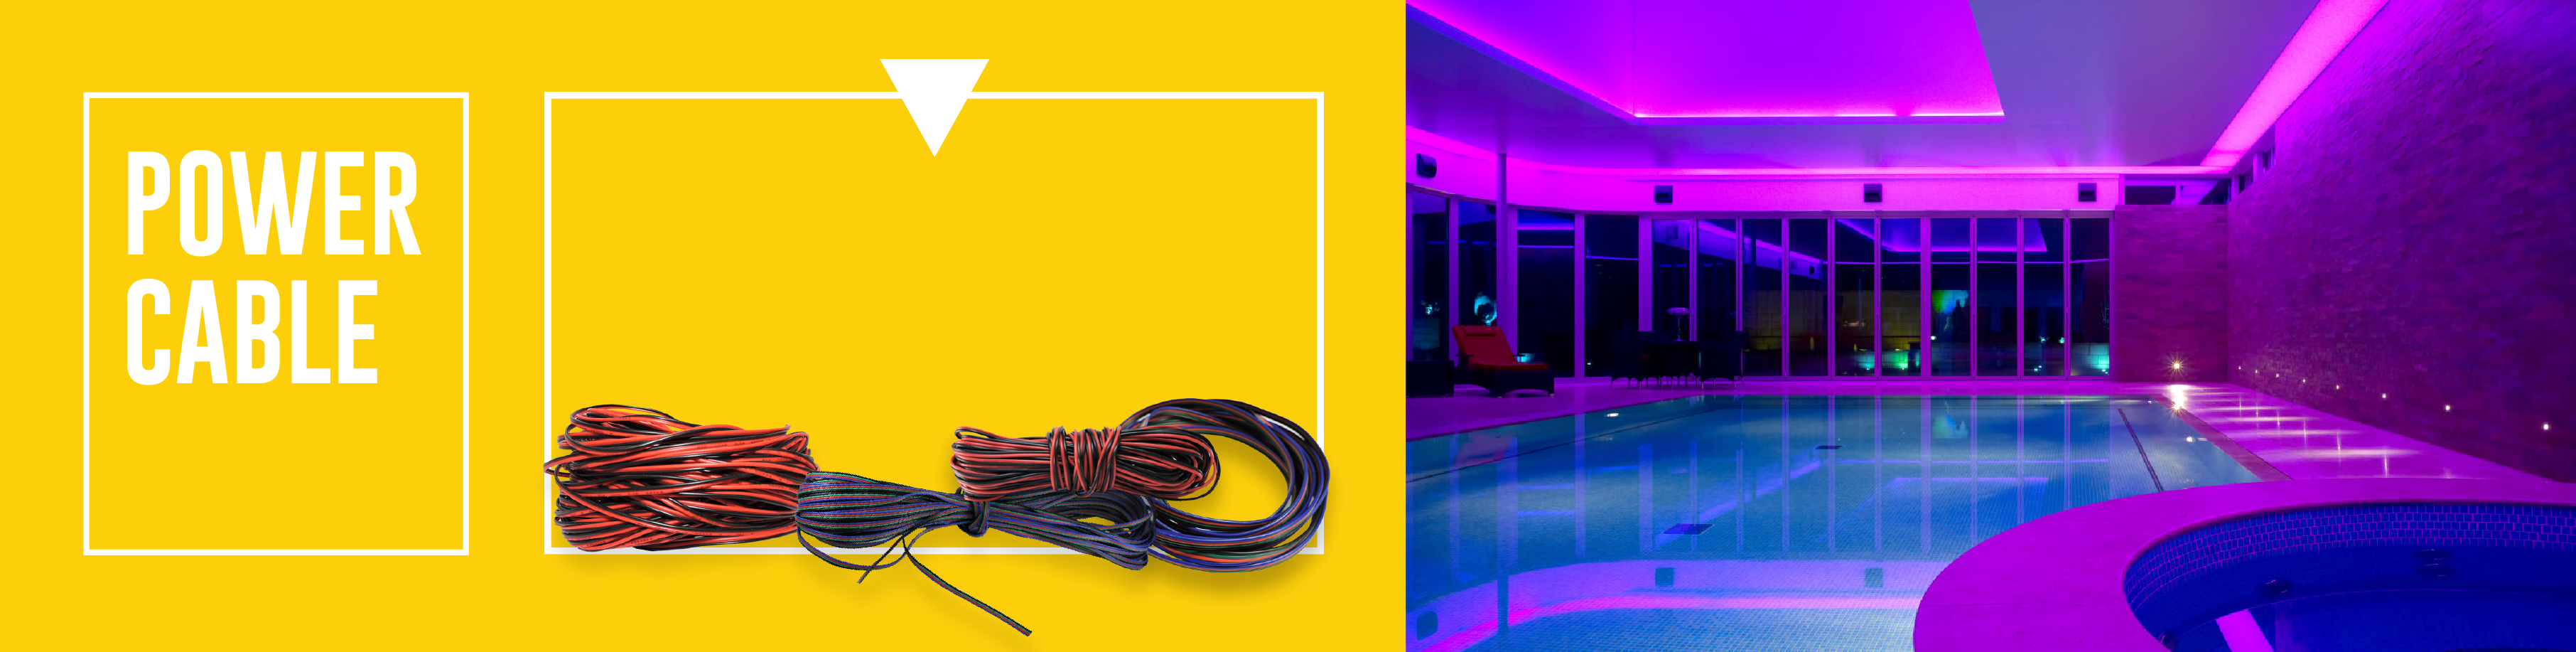 Power Cable for LEDs